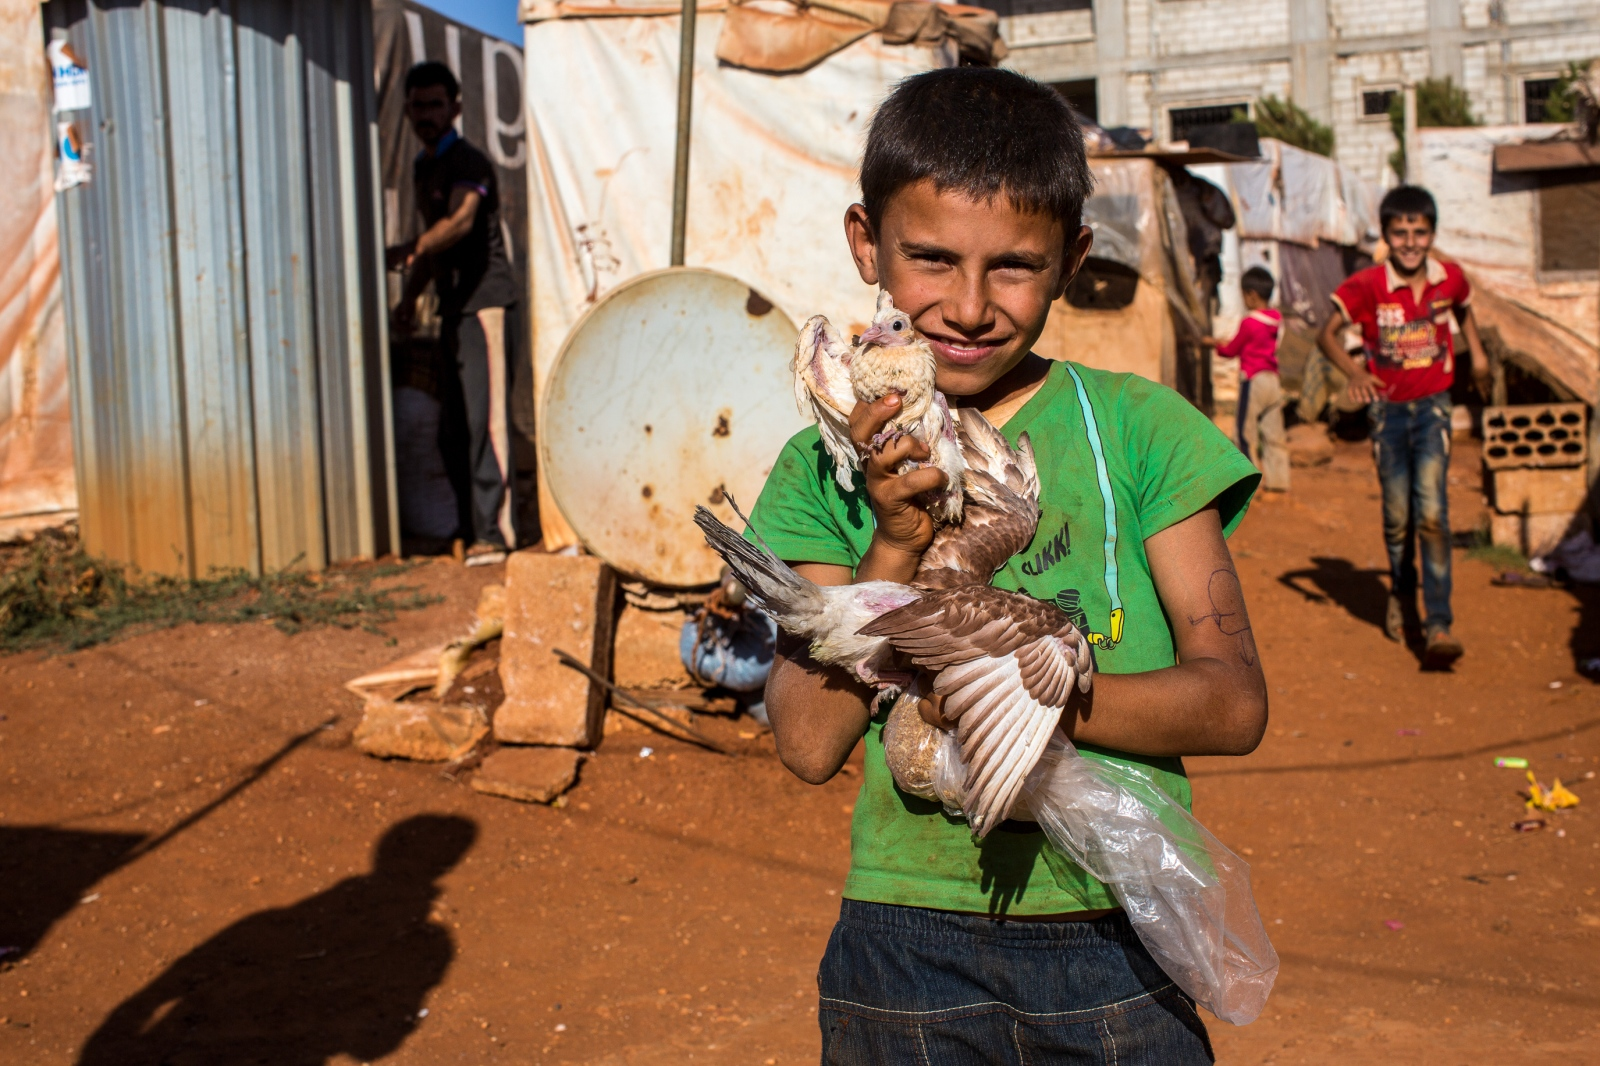 Bekaa Valley, LEBANON, September 5, 2014: Ahmad (10) plays with a bird that he caught. His brothers and father are looking for work in the village of Zahle, while he helps his mother with all kinds of tasks as she is raising three toddlers.